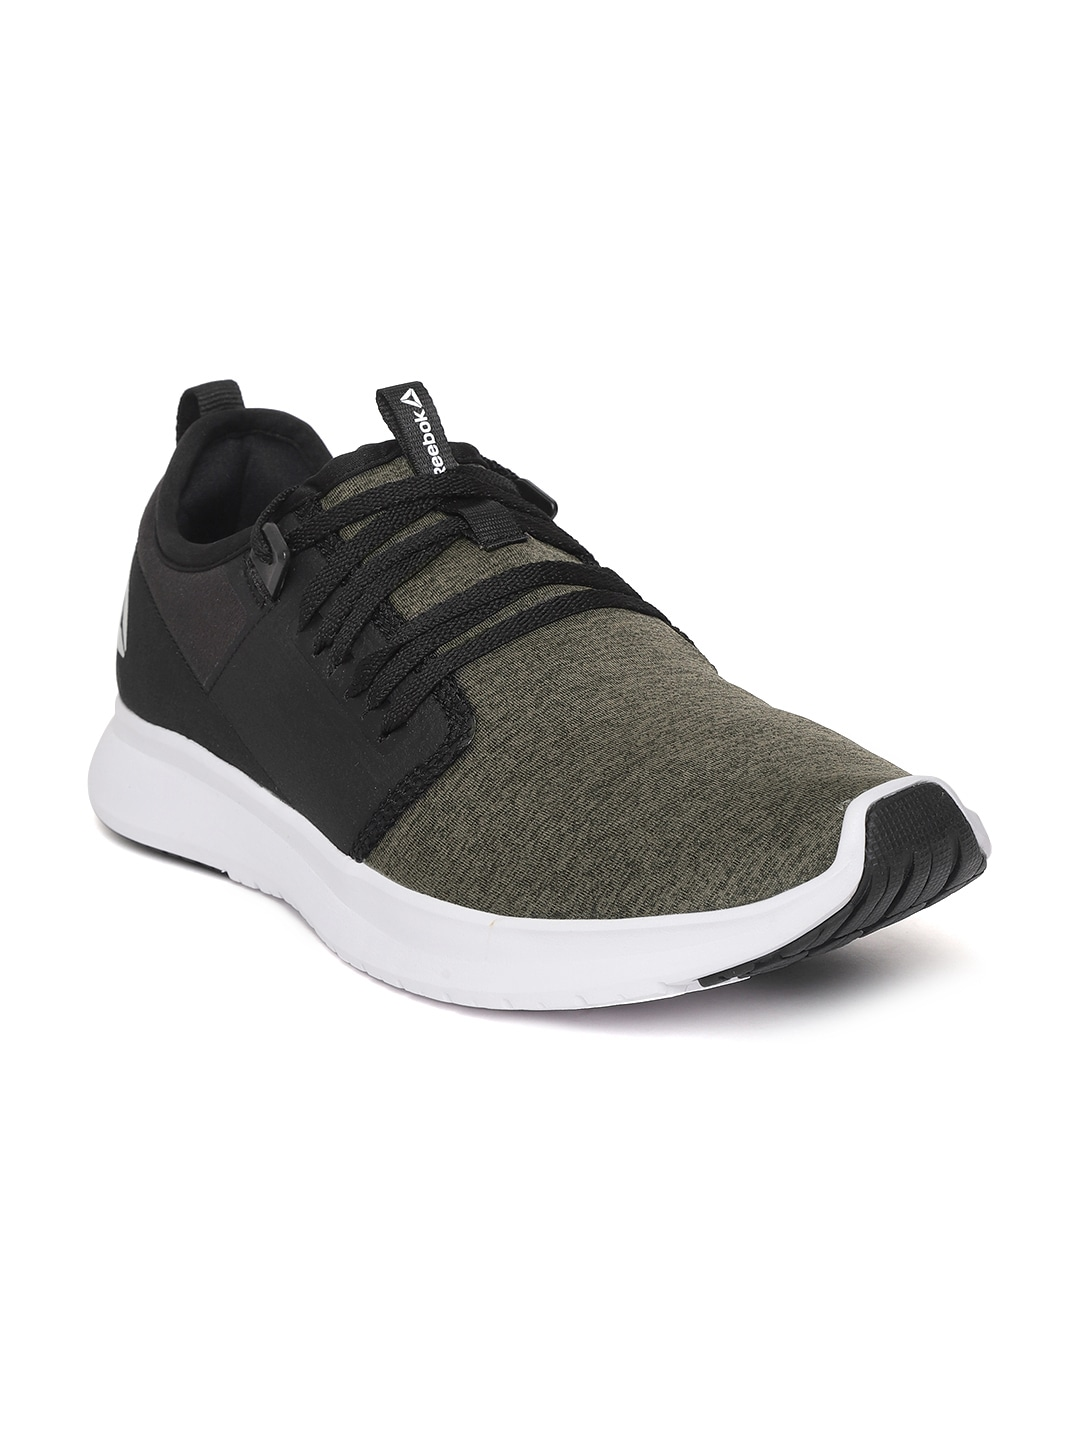 Black & Olive Green Plus Lite LP Running Shoes